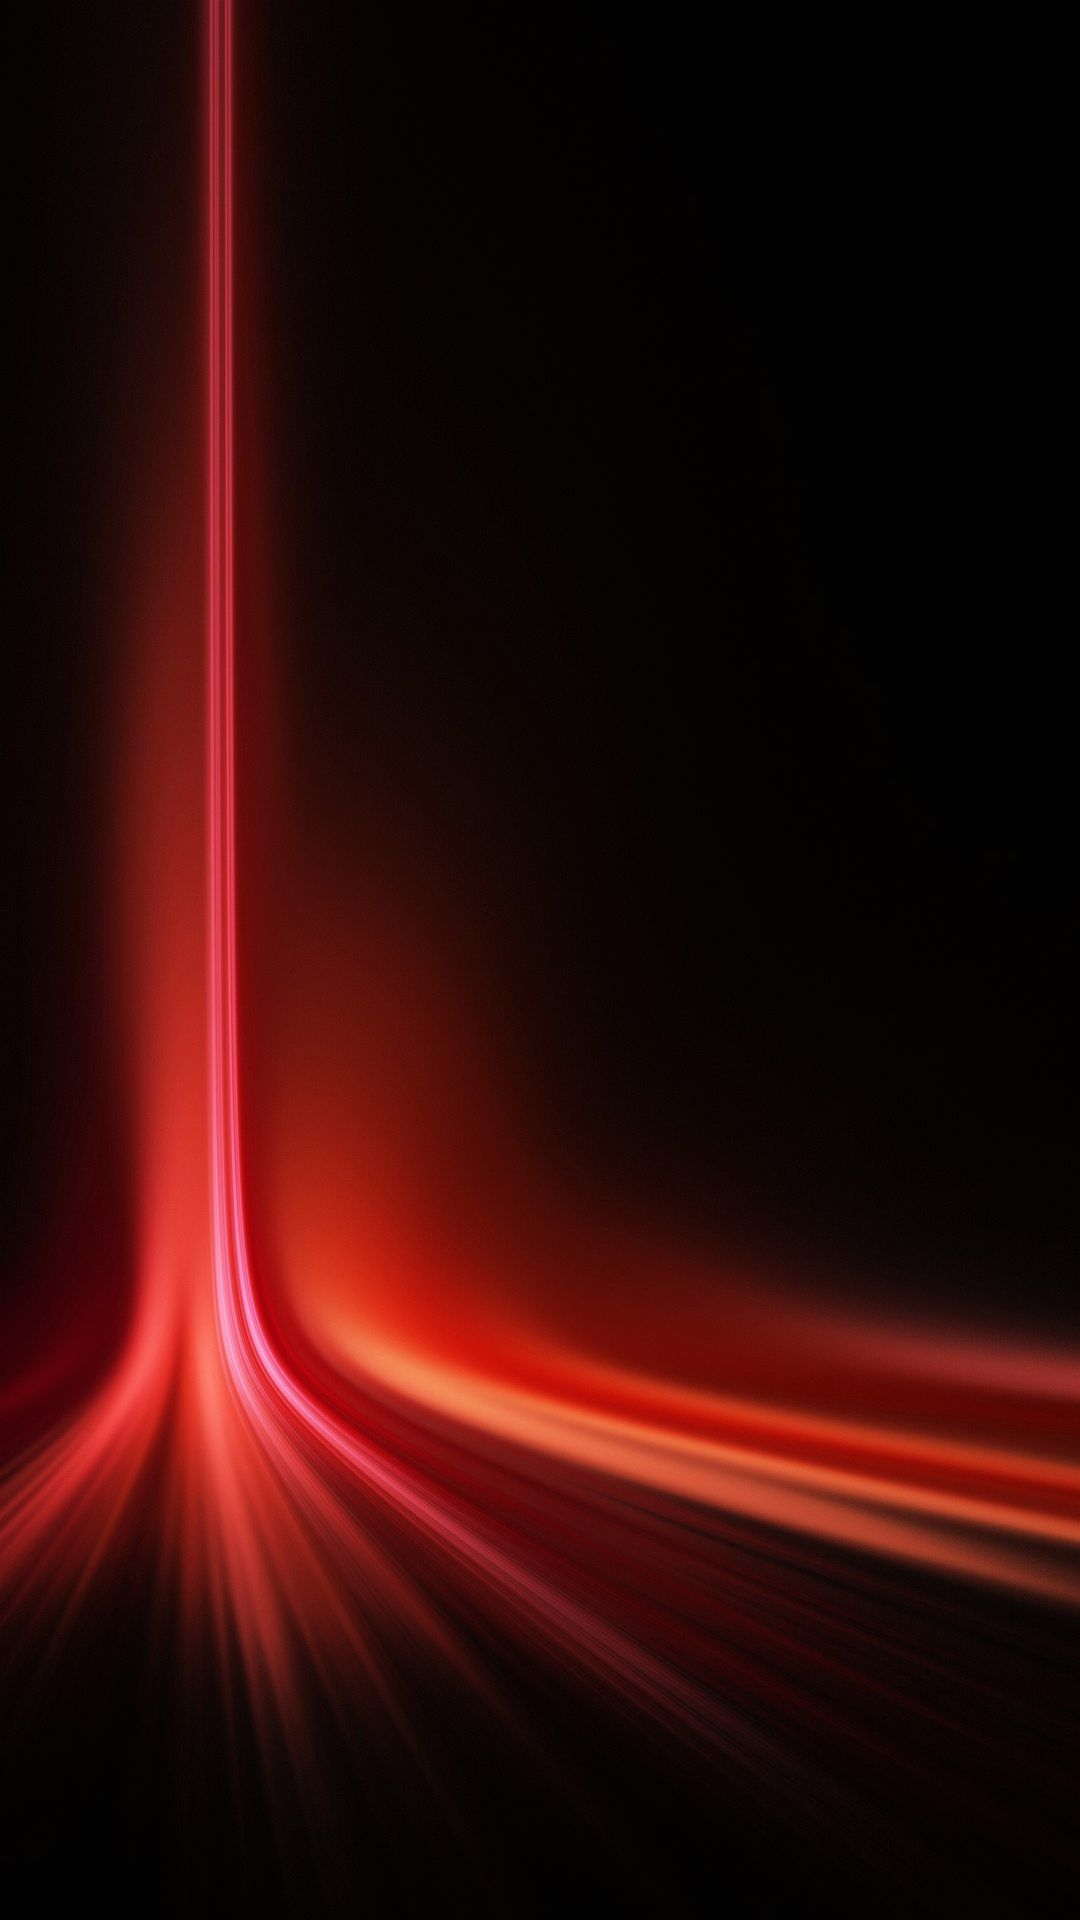 image for smartphone hd background   background   pinterest   hd